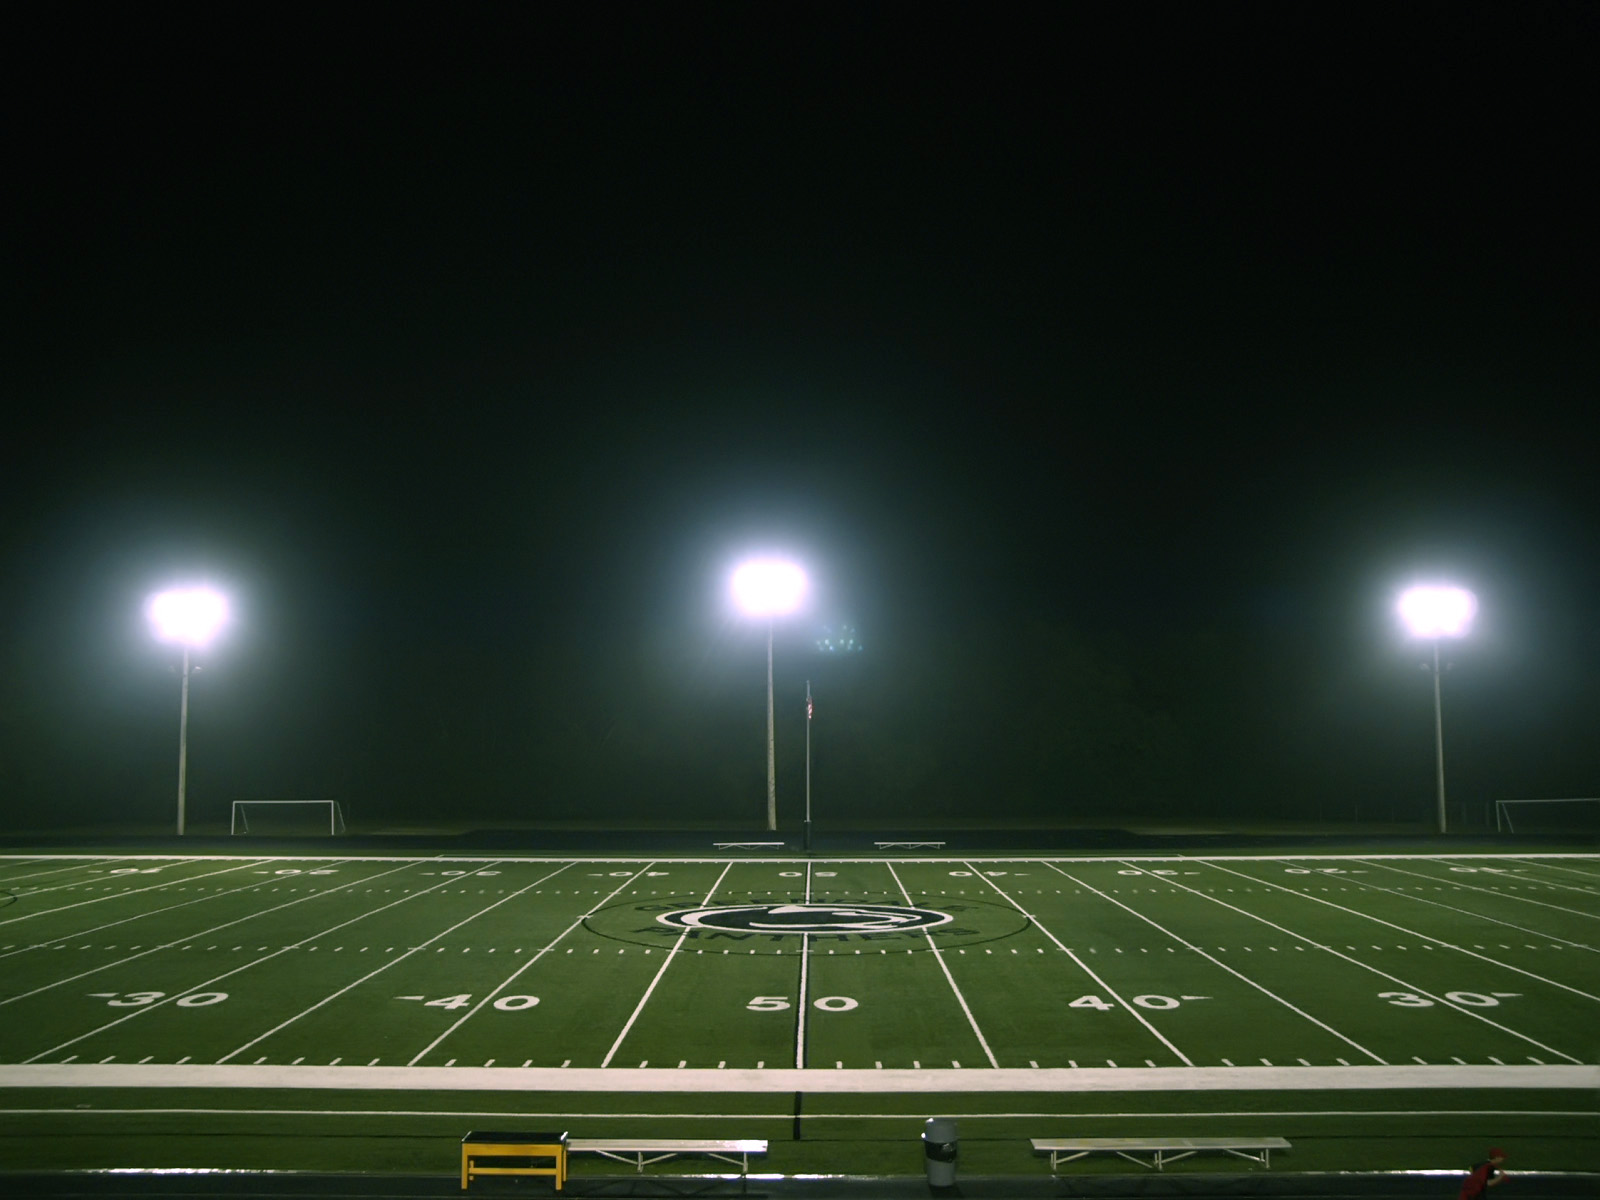 ... Field, wallpaper, Football Field hd wallpaper, background desktop